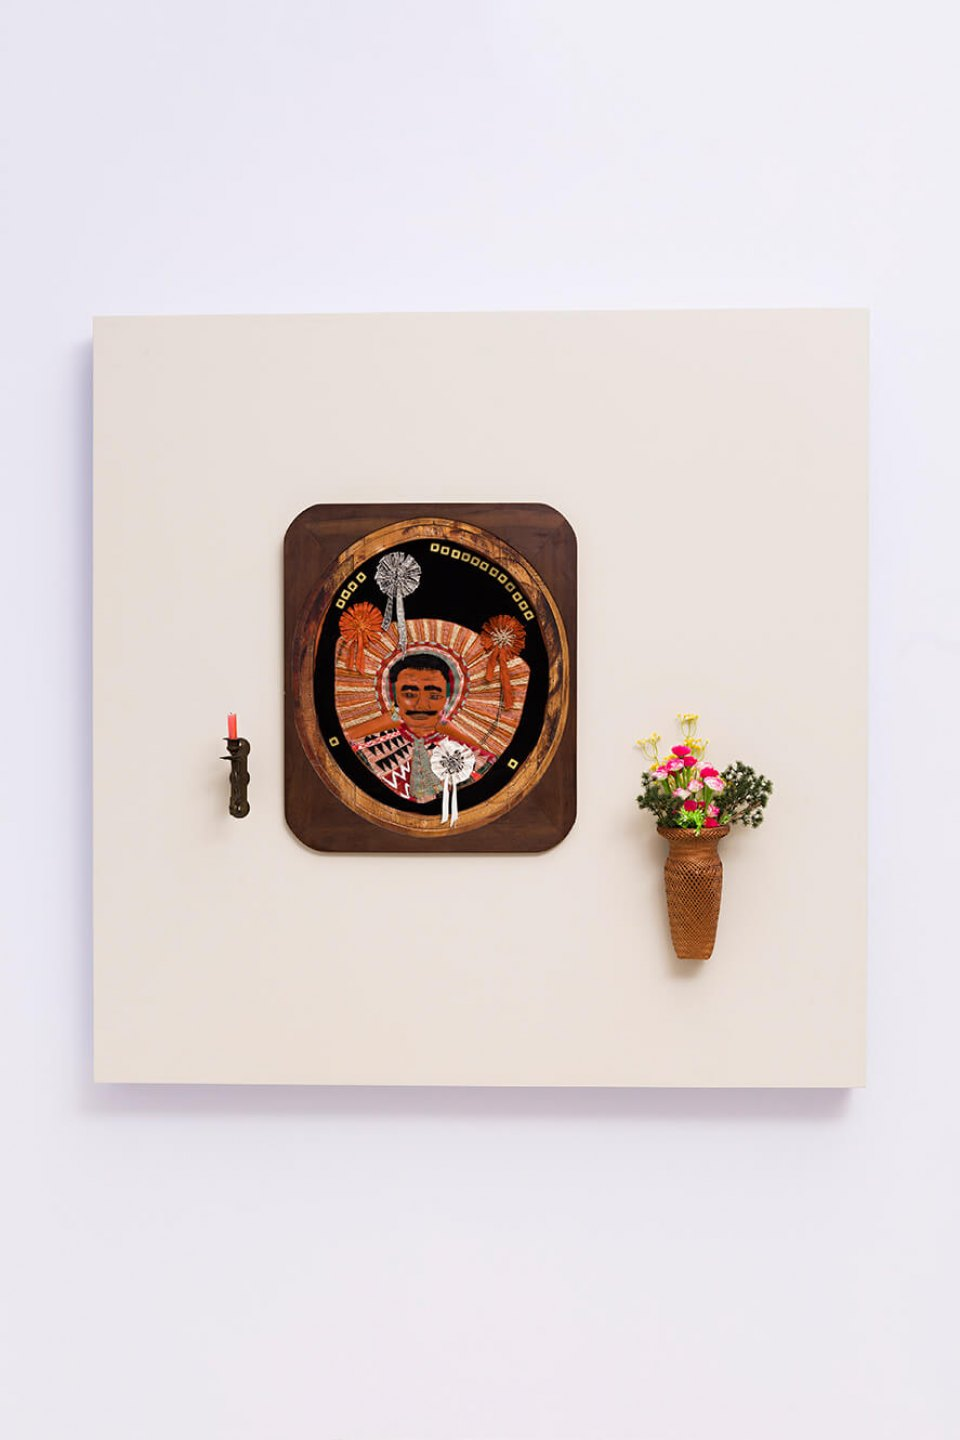 f.marquespenteado, <em>O altar da casa, </em>2012, PVC hand and machine embroidery in wood frame, wicker basket, artificial flowers hand embroidery and support for candle, 90 × 94 × 19 cm - Mendes Wood DM